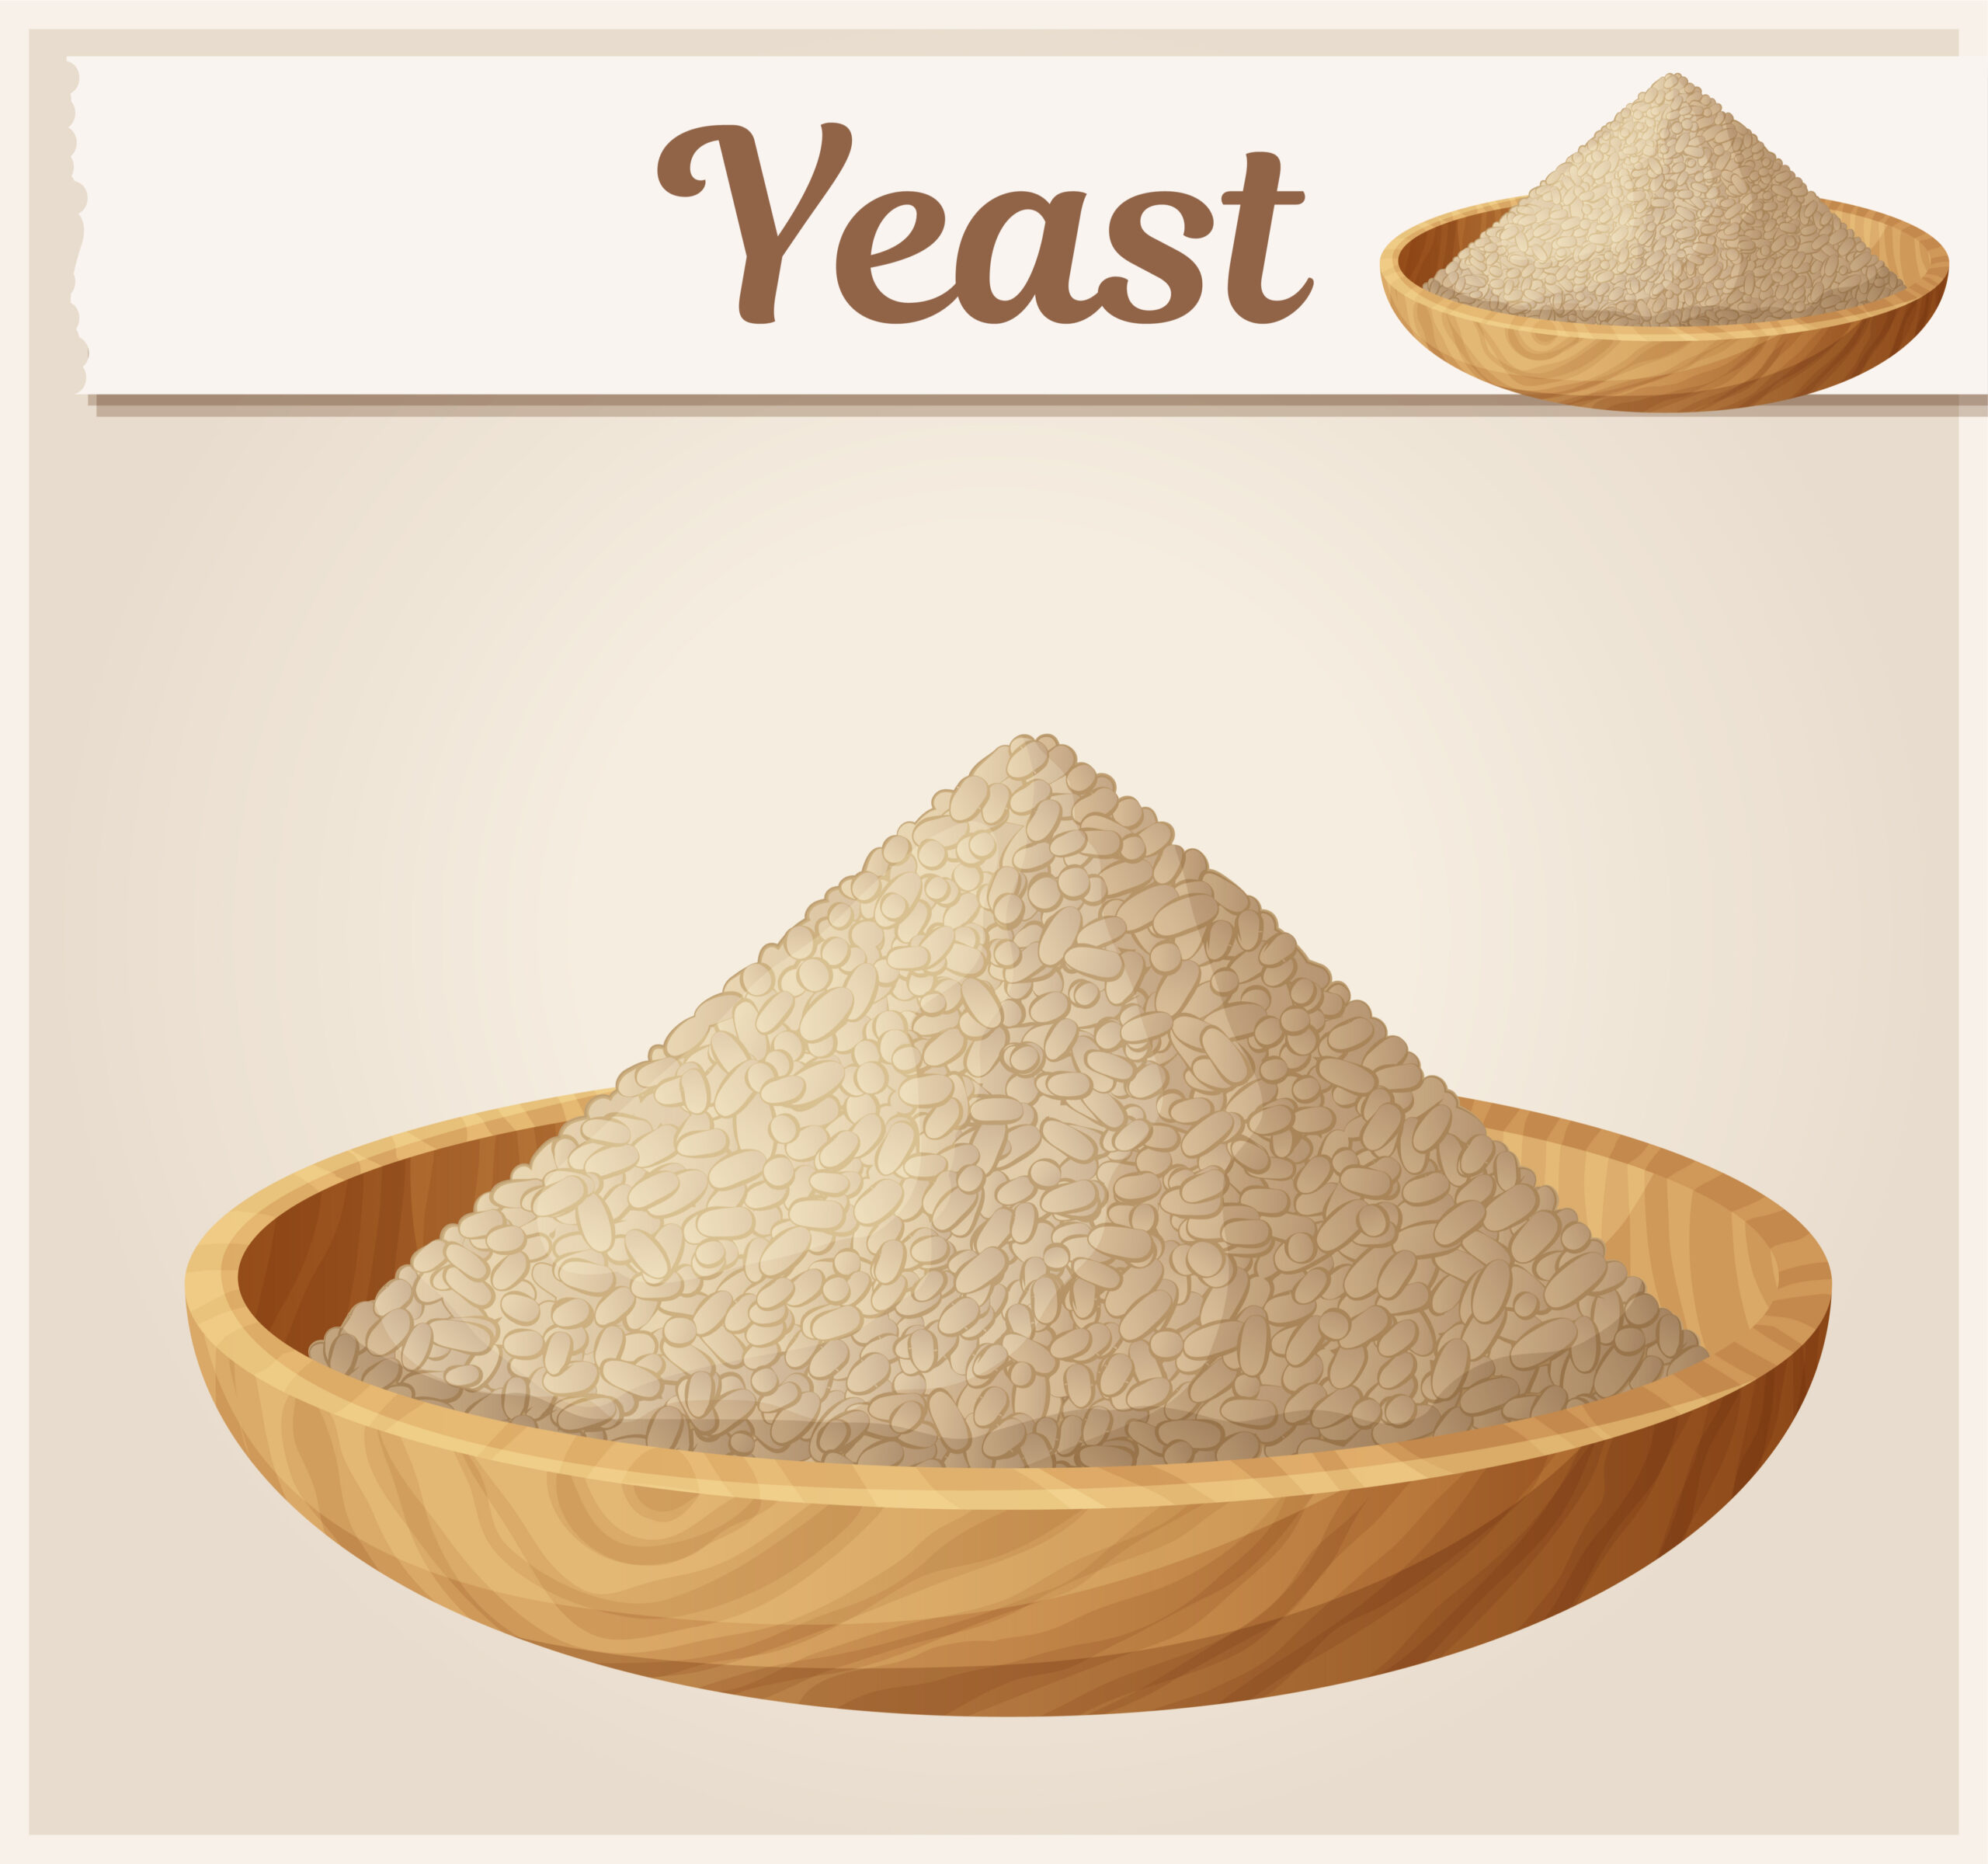 Types of Yeast for Baking, Which is Best?